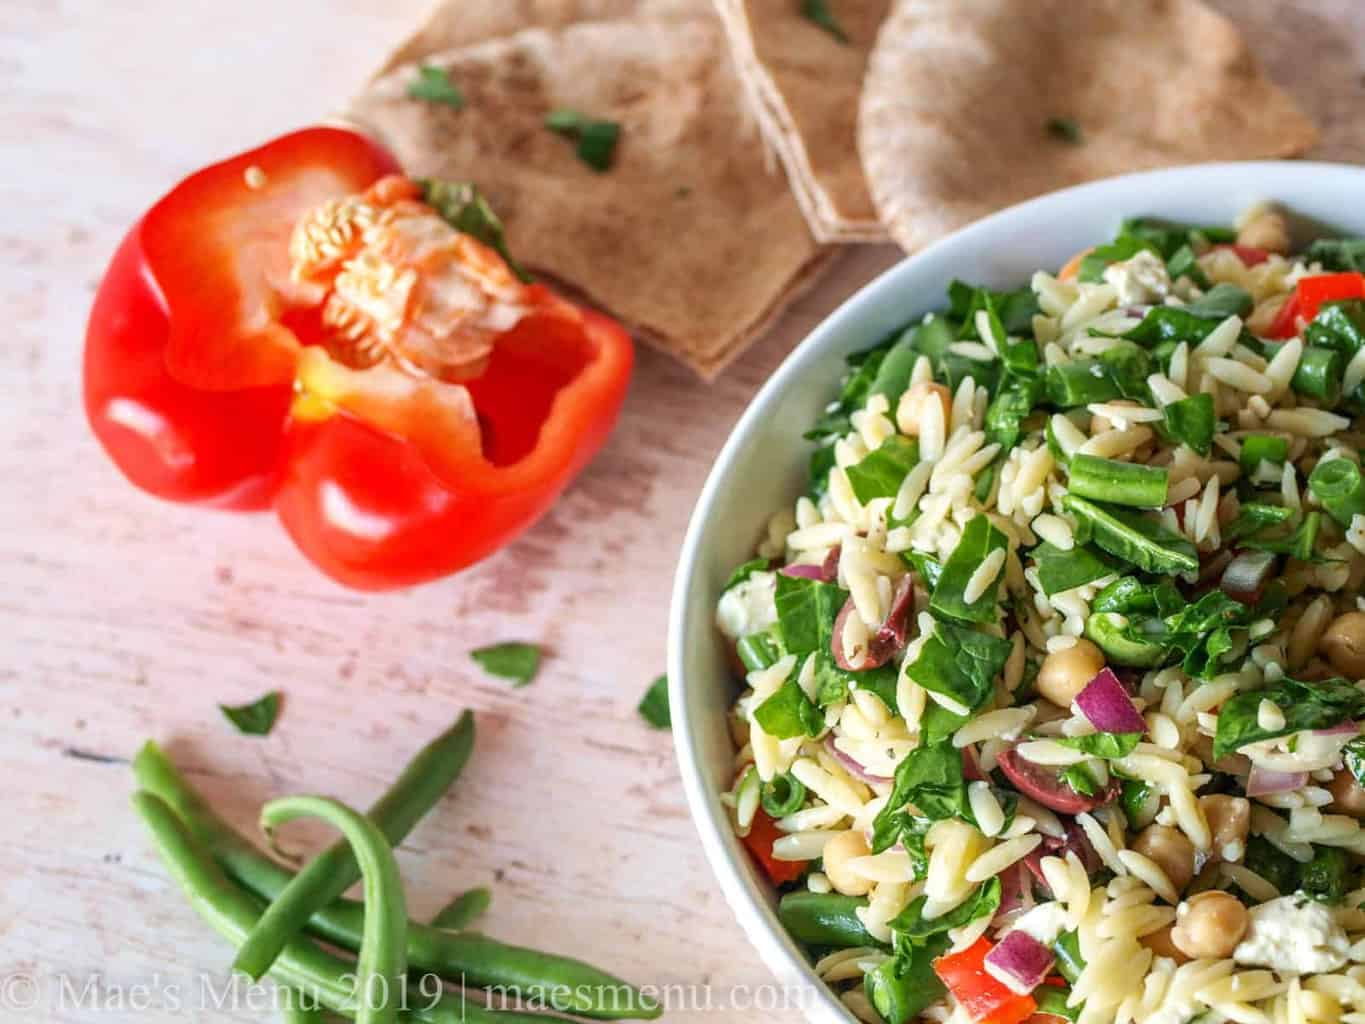 White bowl of Mediterranean Chickpea and Orzo salad next to pita wedges and veggies.